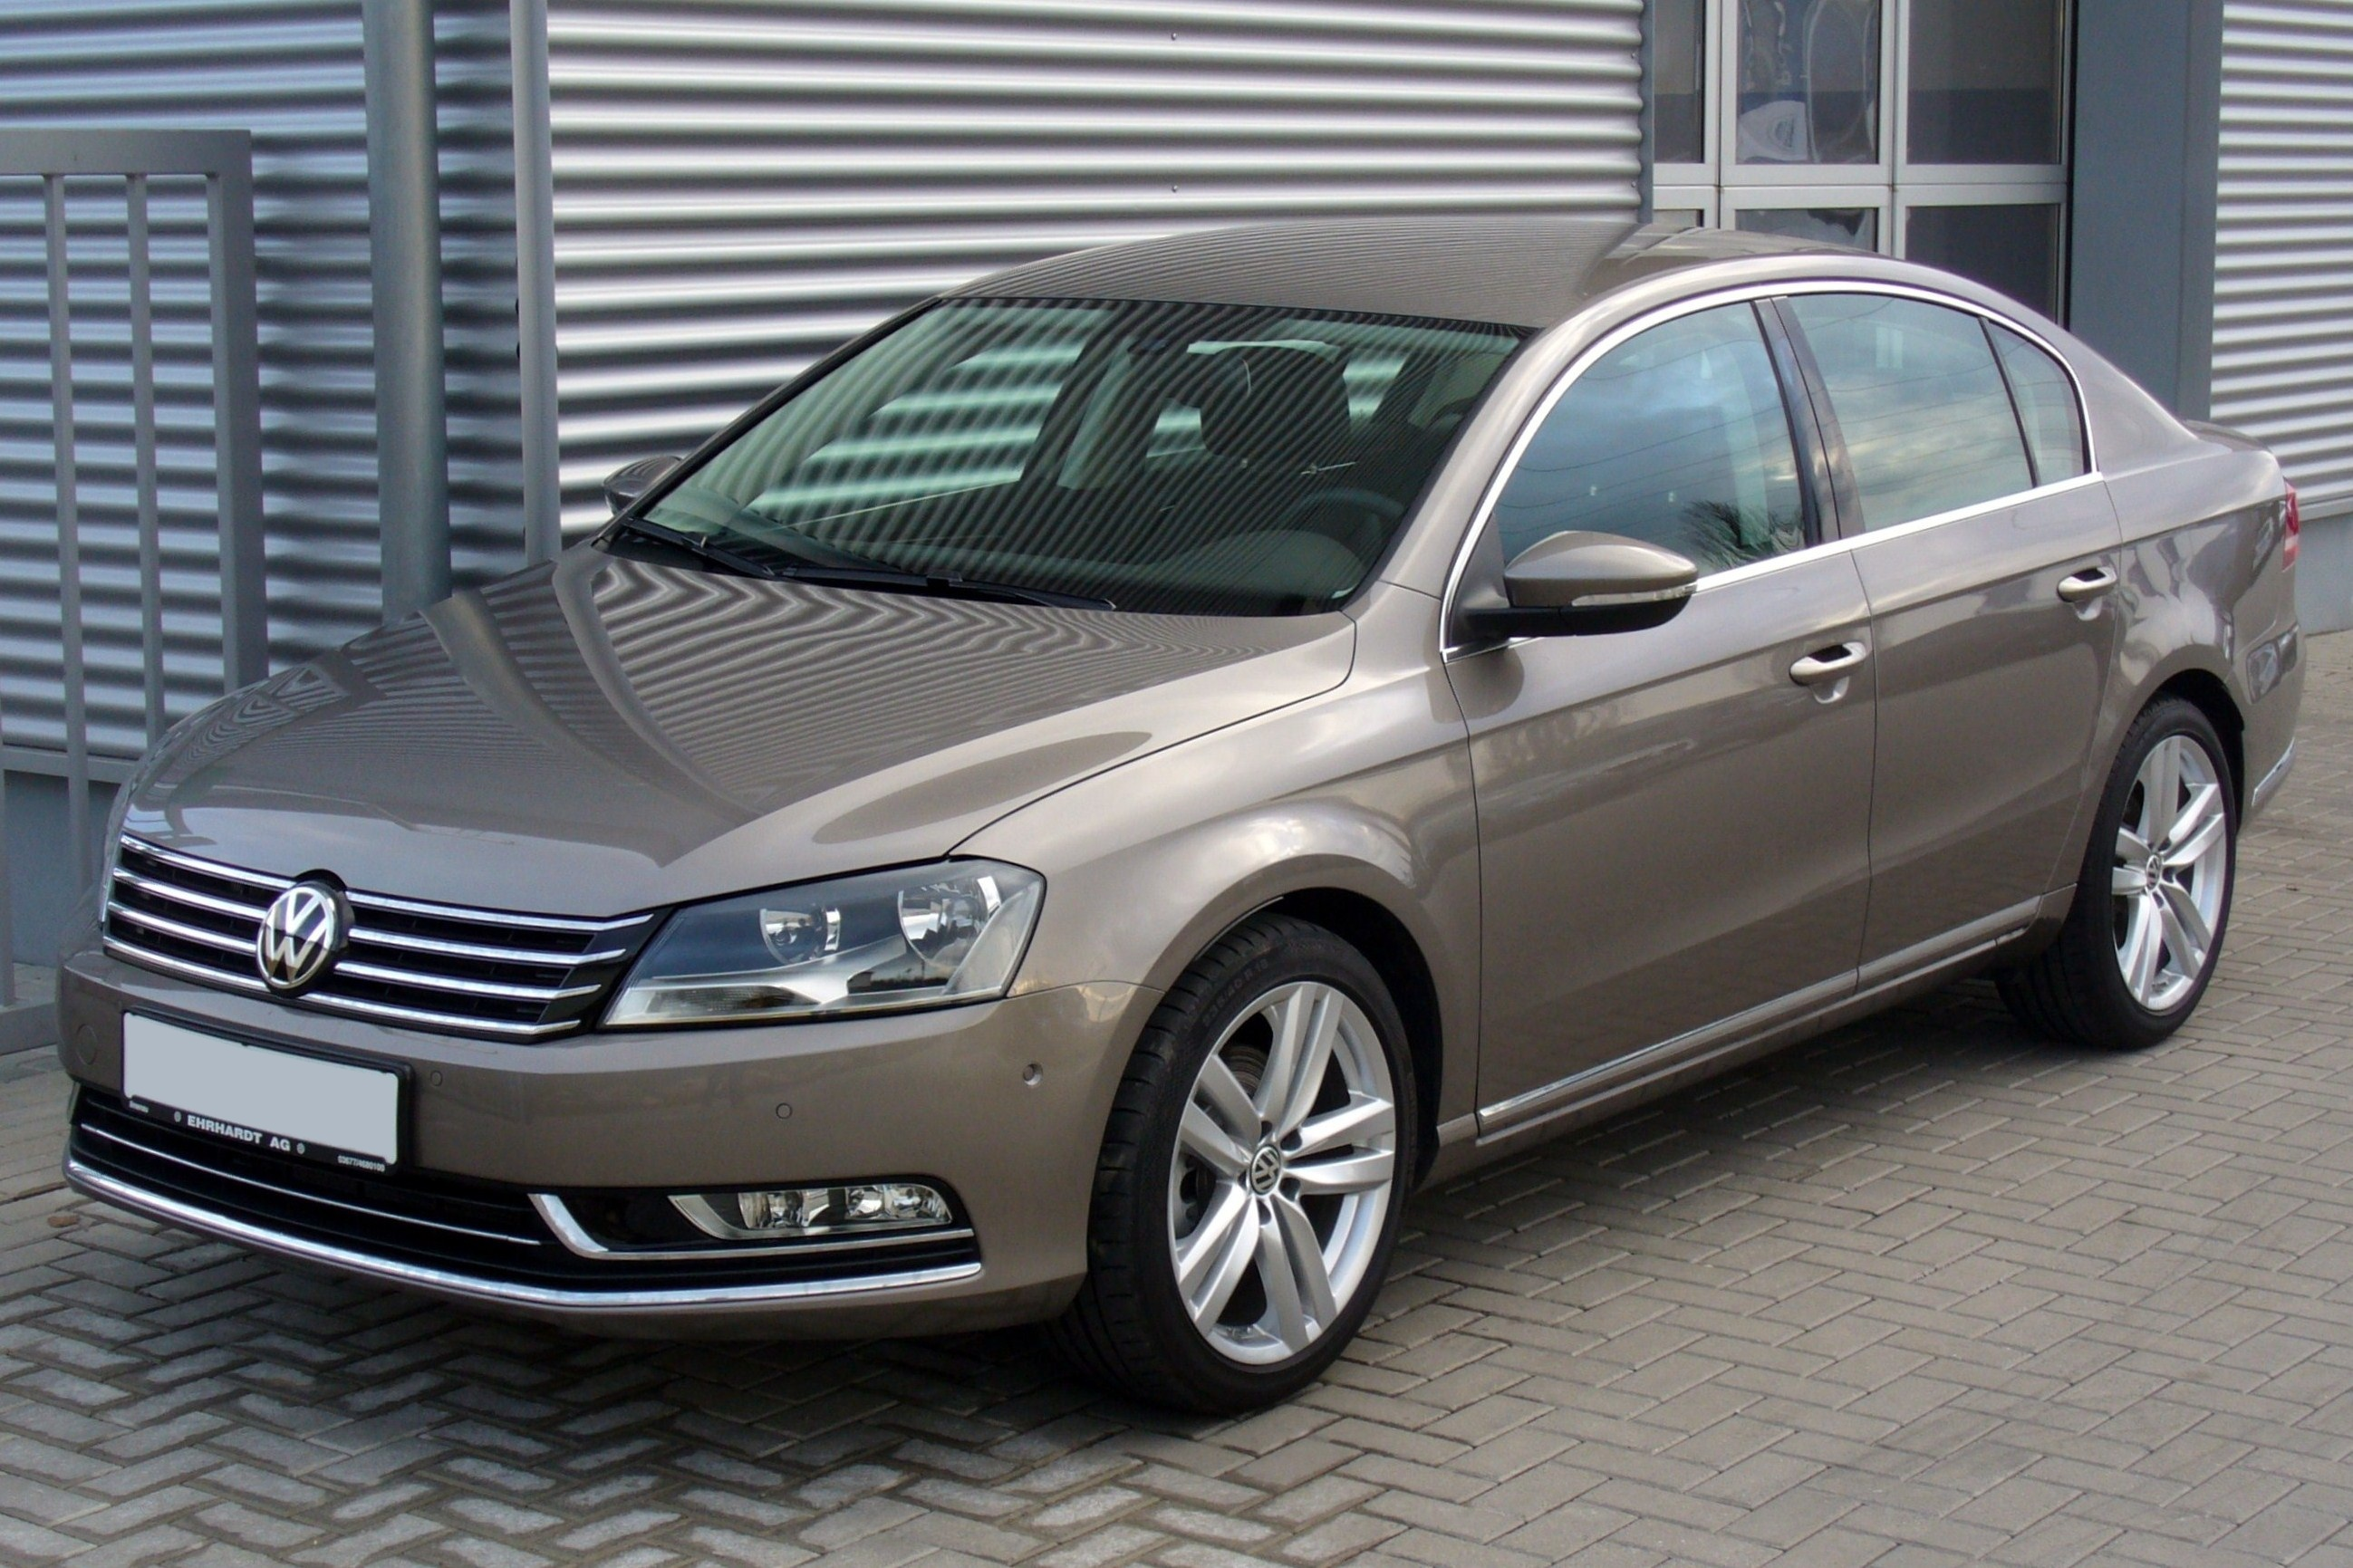 file vw passat b7 2 0 tdi dsg highline kaschmirbraun jpg wikimedia commons. Black Bedroom Furniture Sets. Home Design Ideas